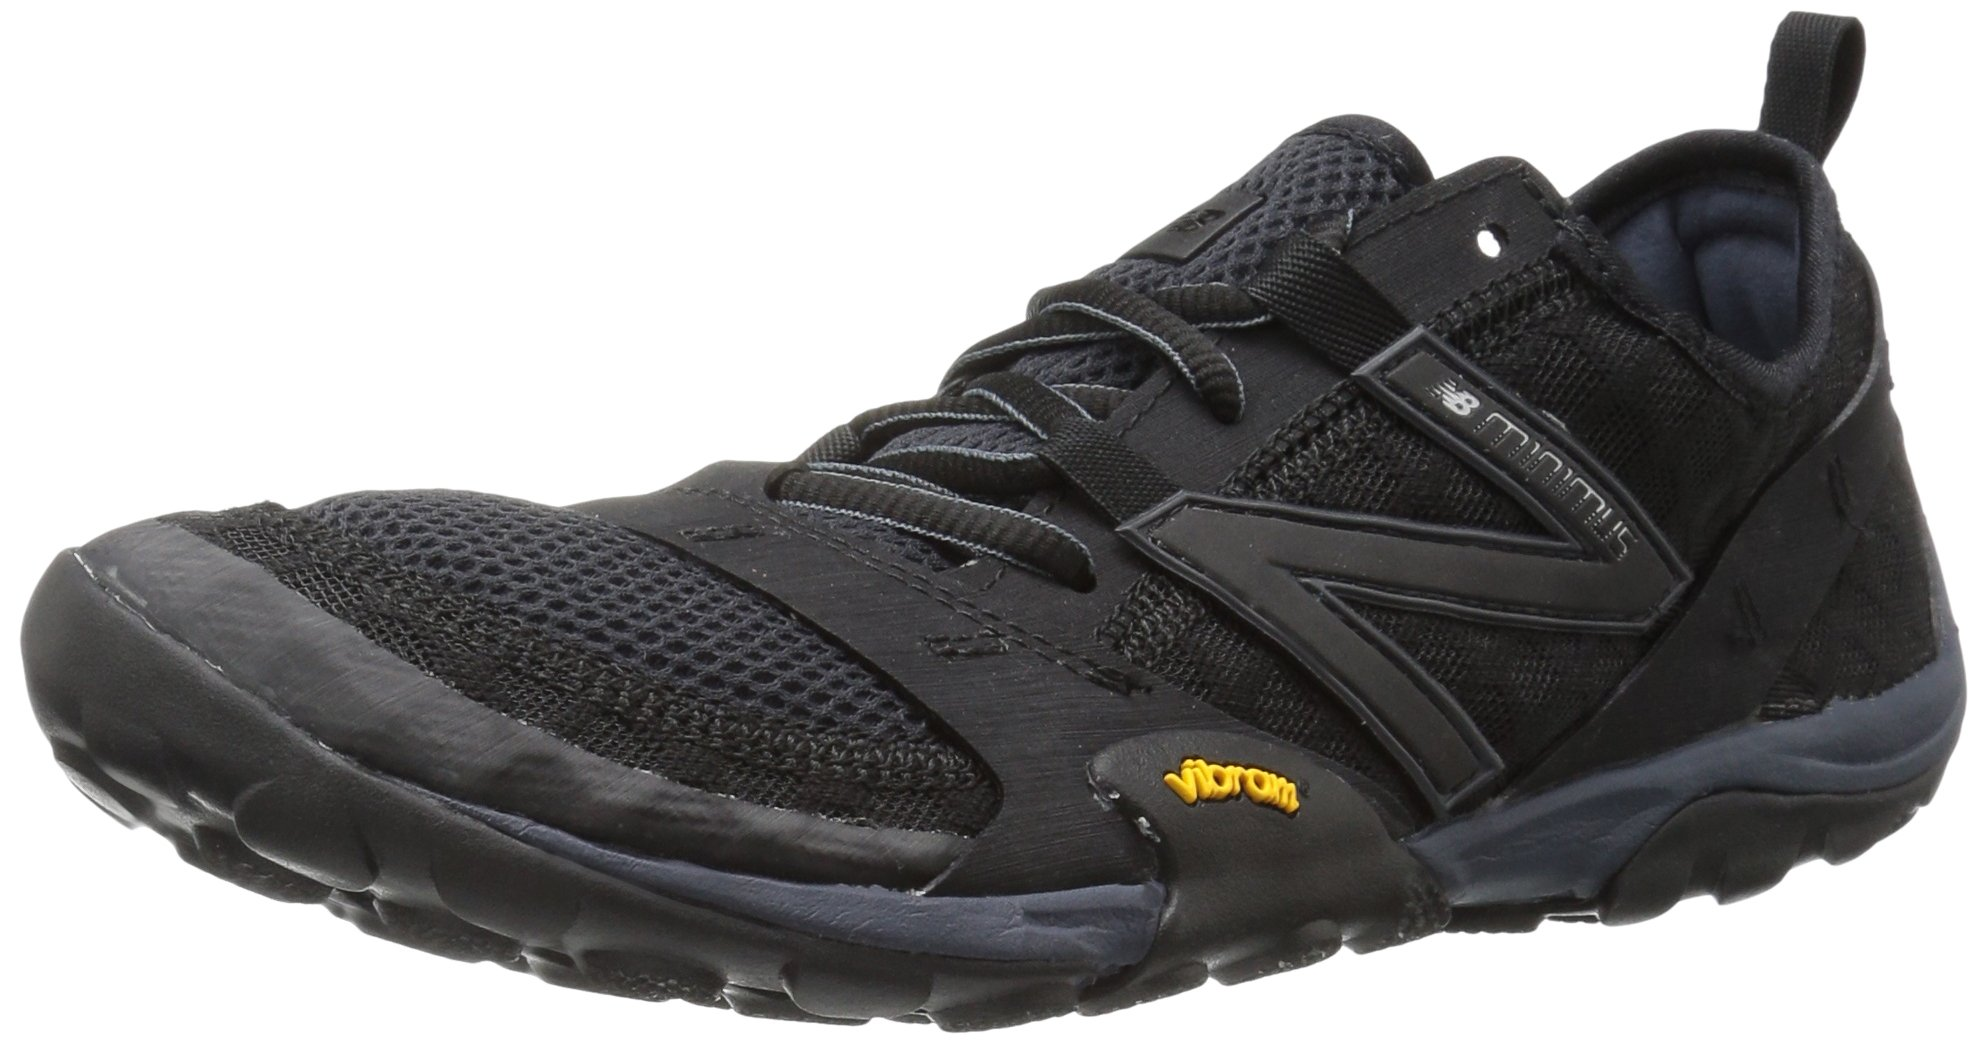 New Balance Men's MT10V1 Minimus Trail Running Shoe, Black/Silver, 9.5 D US